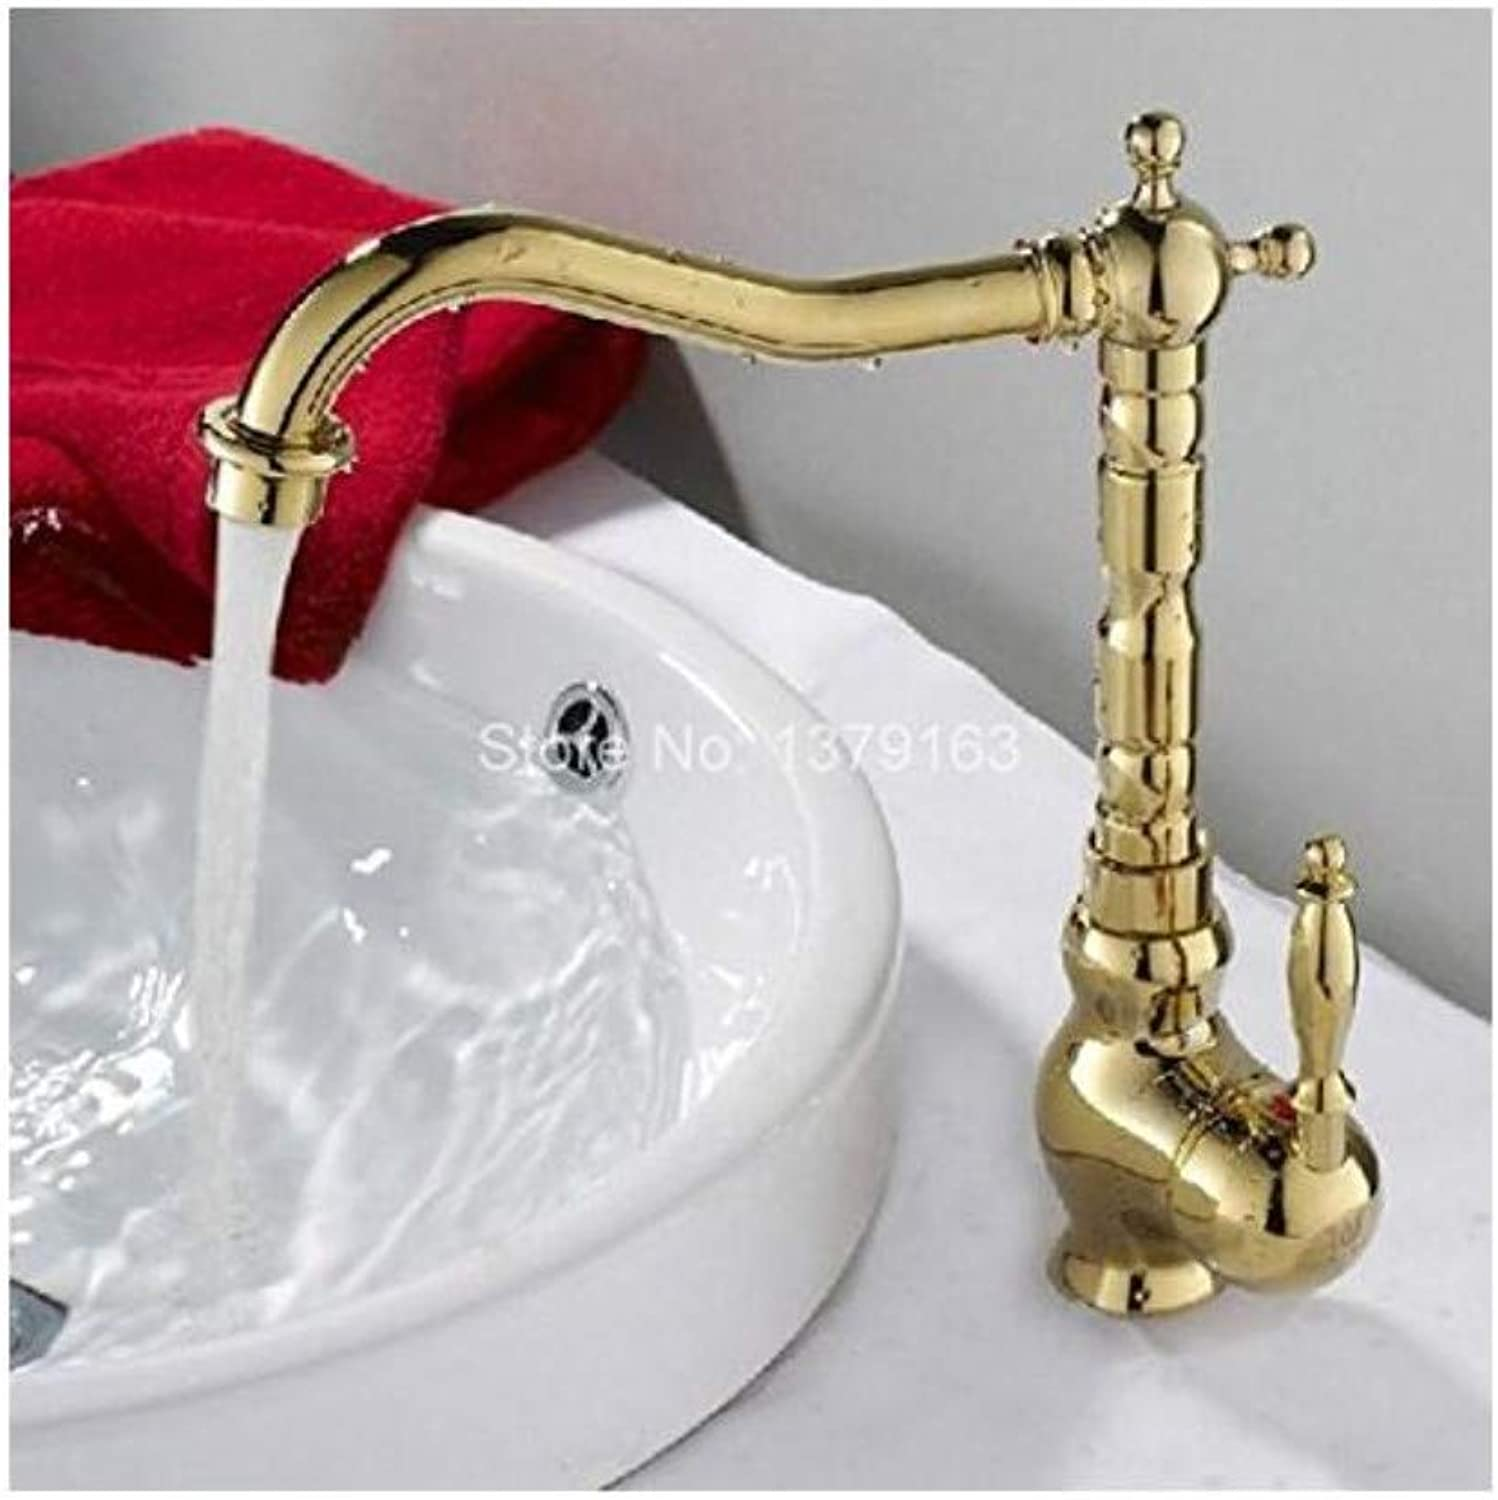 Luxury Vintage Plated Faucet Swivel Spout Water Tap Polished Brass Single Handle Single Hole Kitchen Sink Faucet Basin Mixer Tap